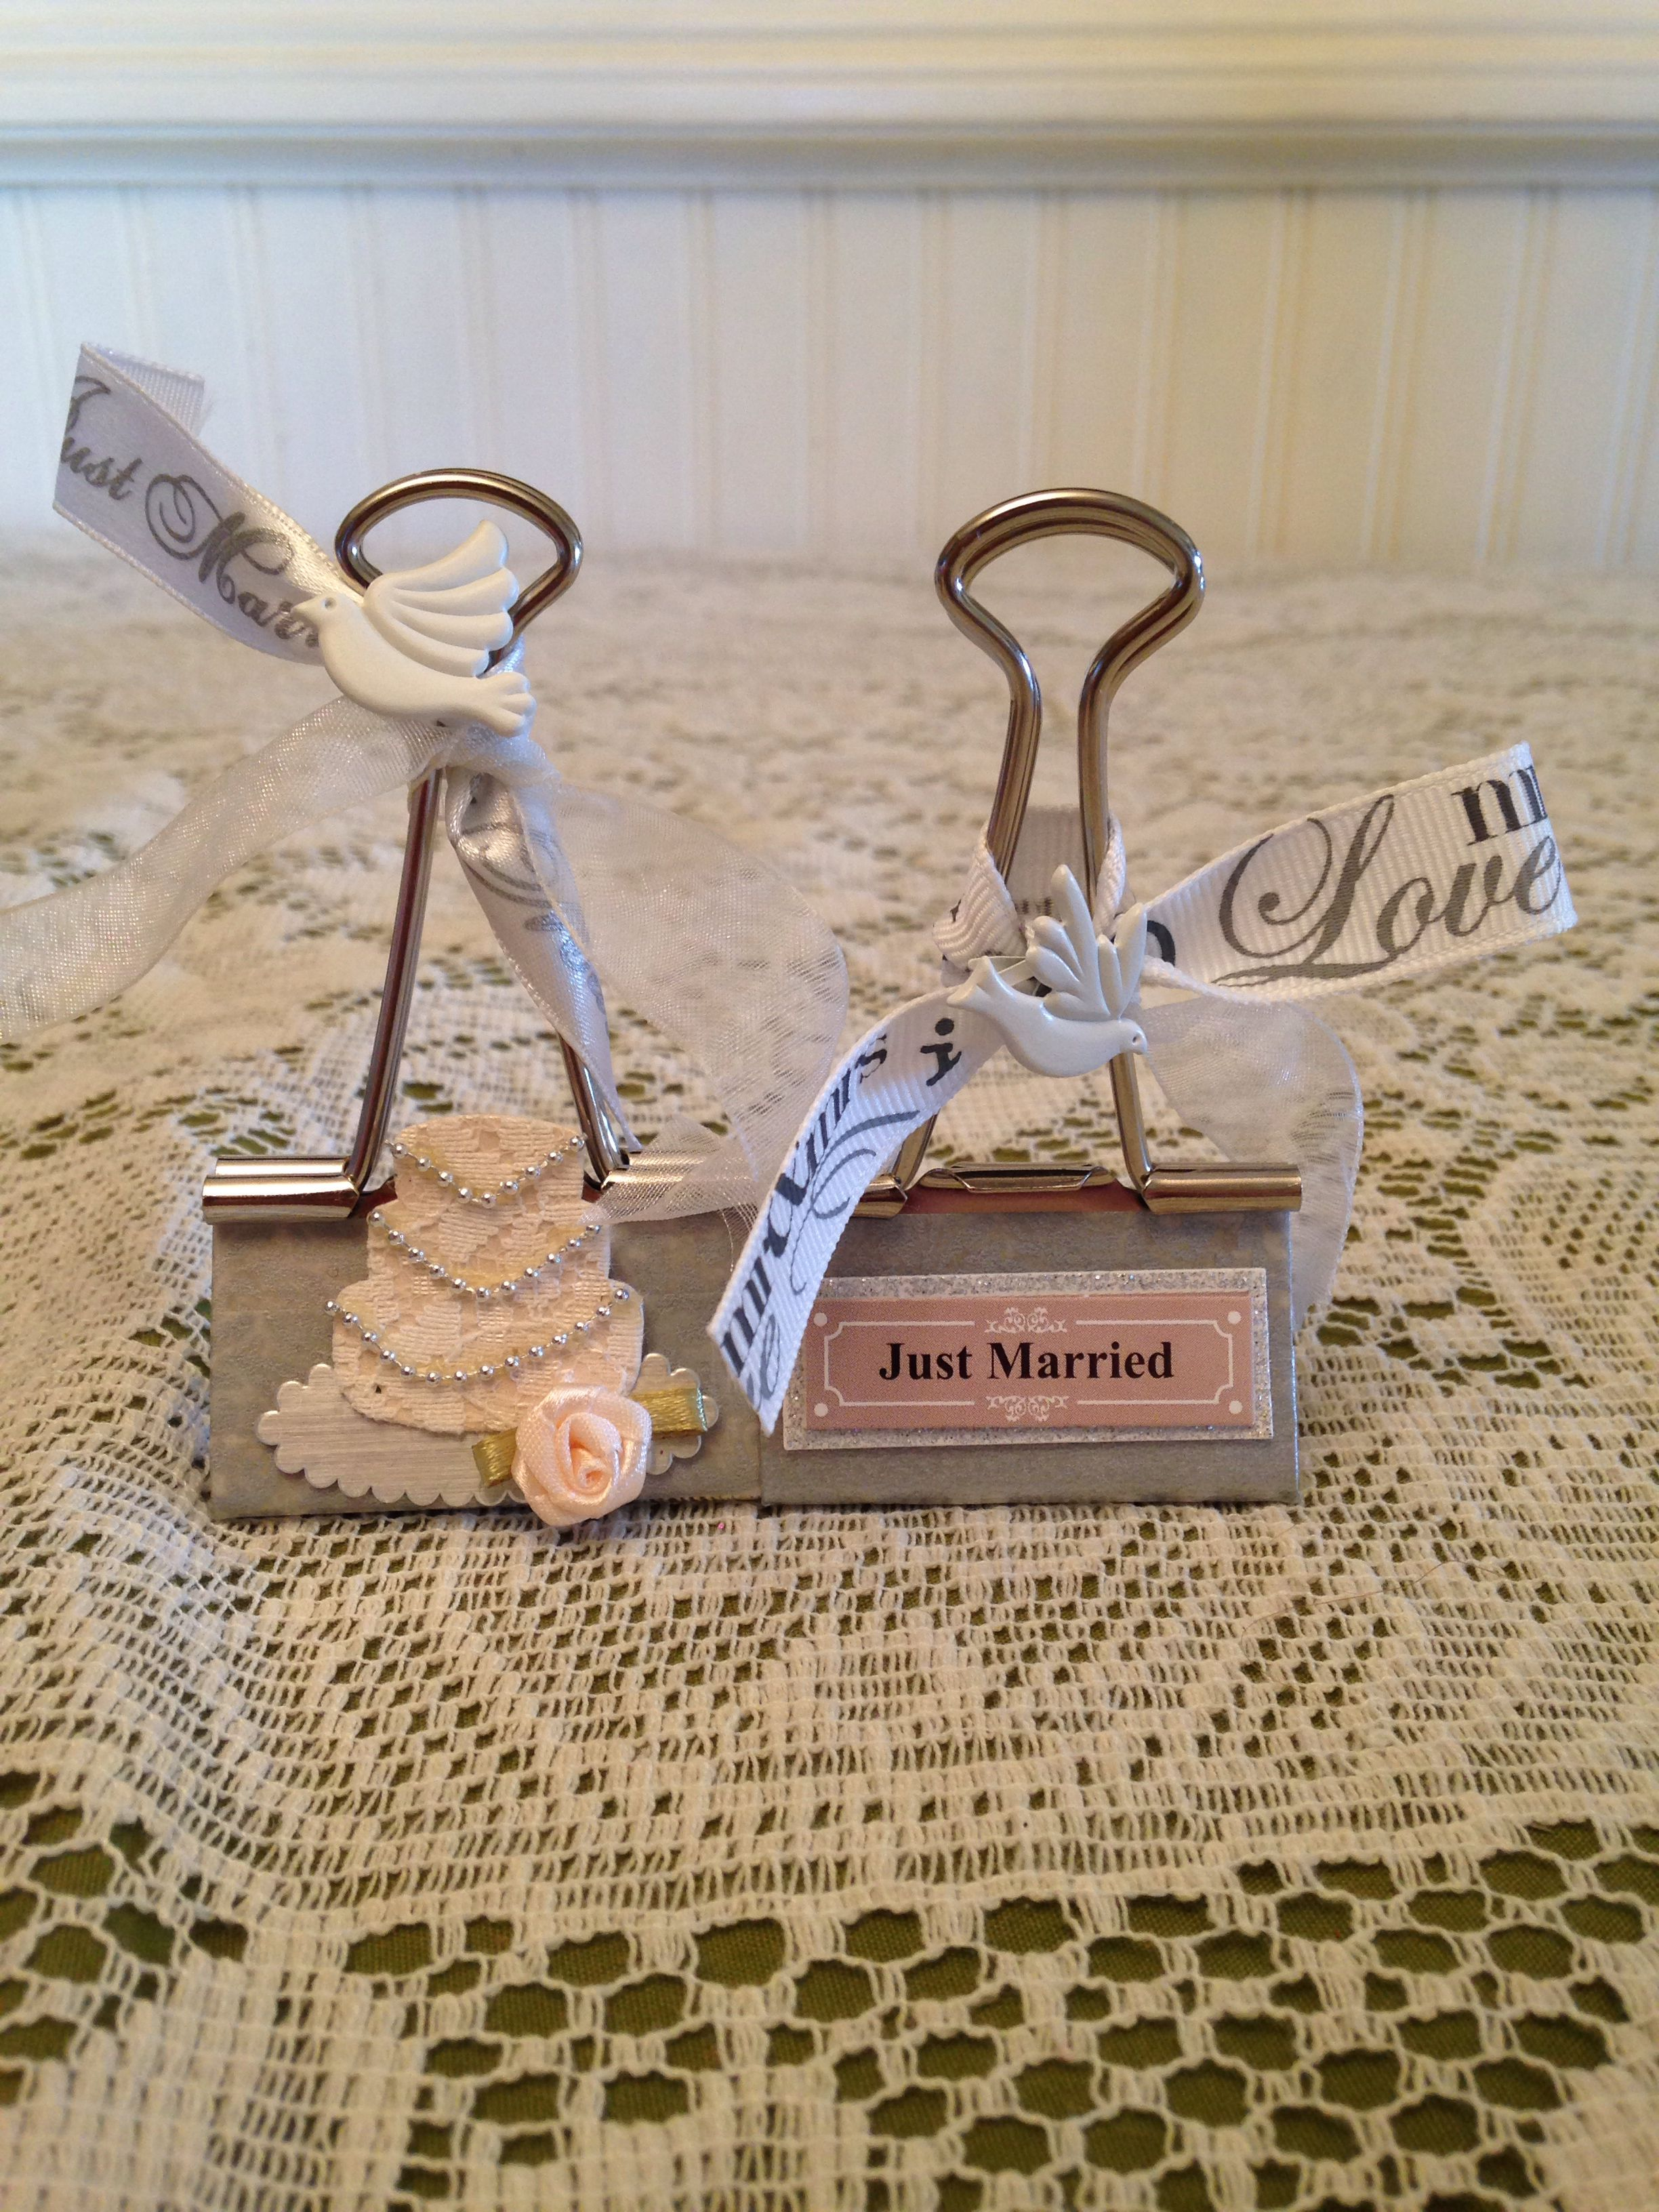 Wedding Binder Clips With Images Binder Clip Hacks Place Card